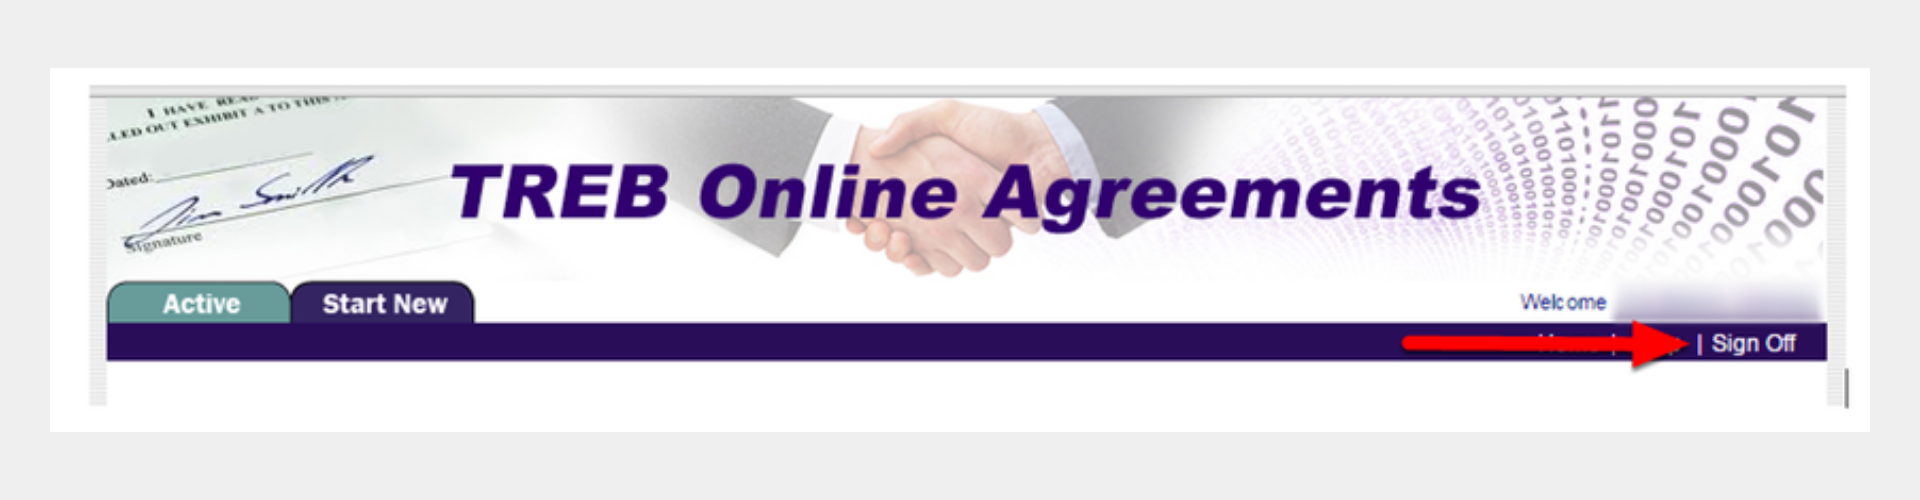 Copy_of_TRREB_Online_Agreements_-_Guideline__1_.png